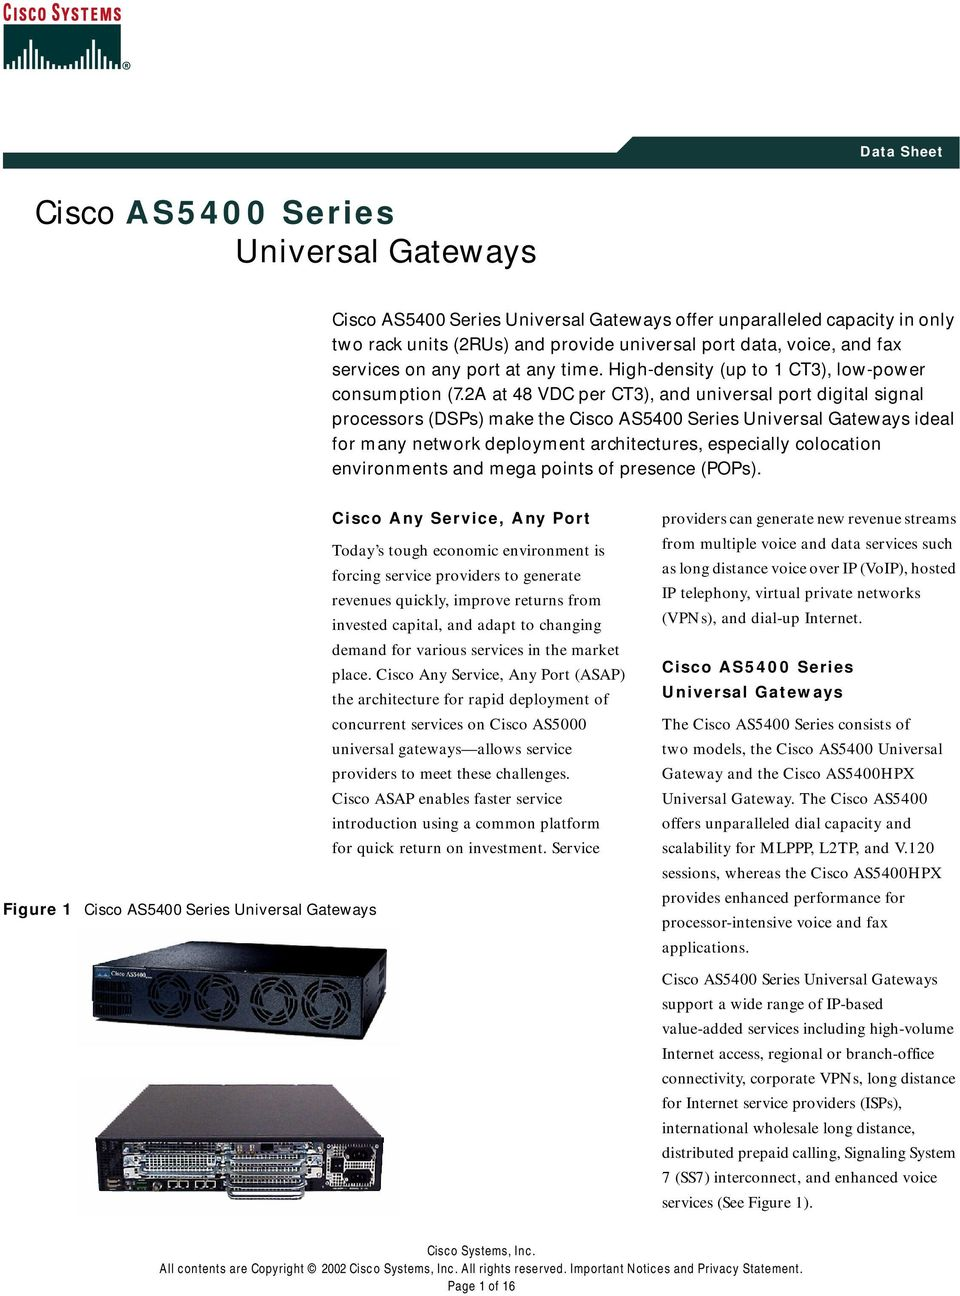 2A at 48 VDC per CT3), and universal port digital signal processors (DSPs) make the Cisco AS5400 Series Universal Gateways ideal for many network deployment architectures, especially colocation